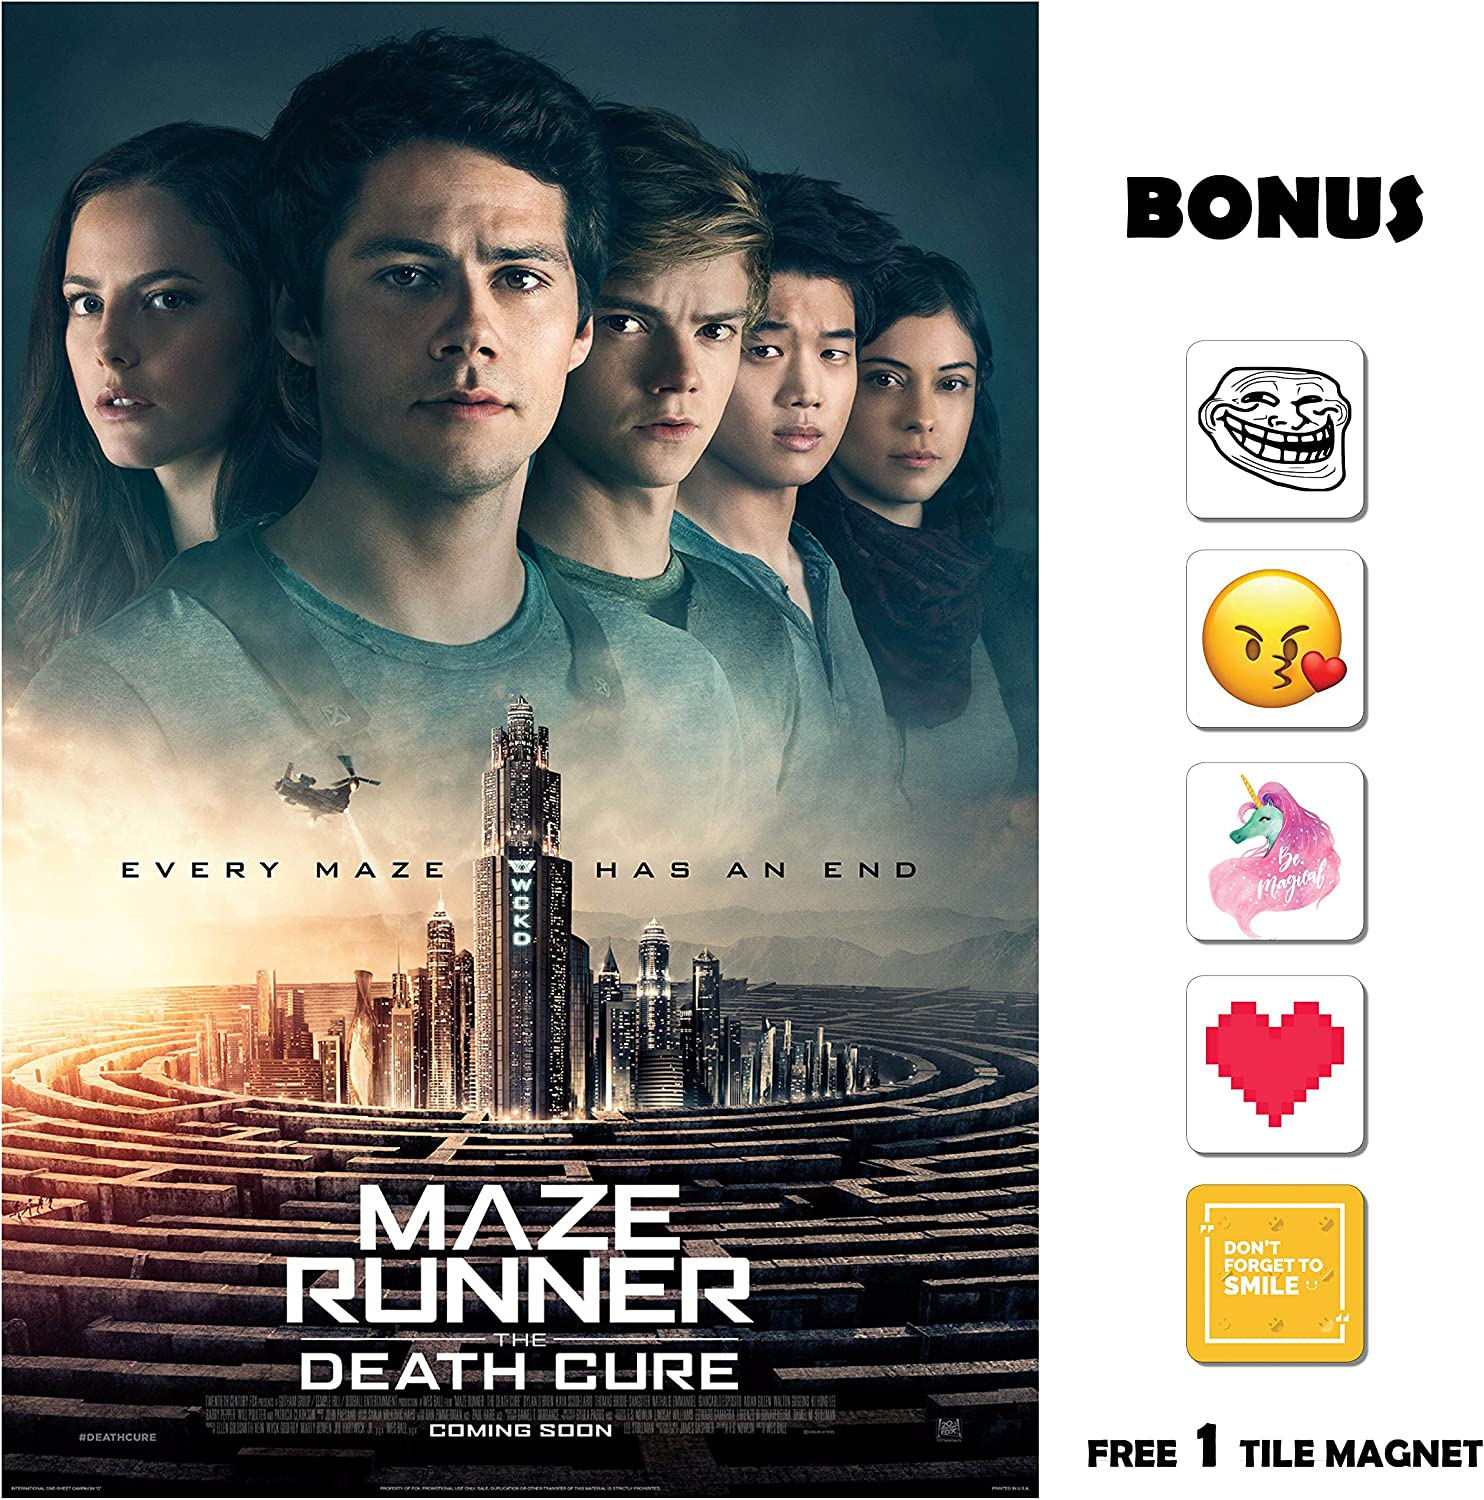 Amazon Com Movie Poster Maze Runner The Death Cure 2018 End 13 In X 19 In Flyer Borderless Free 1 Tile Magnet Posters Prints